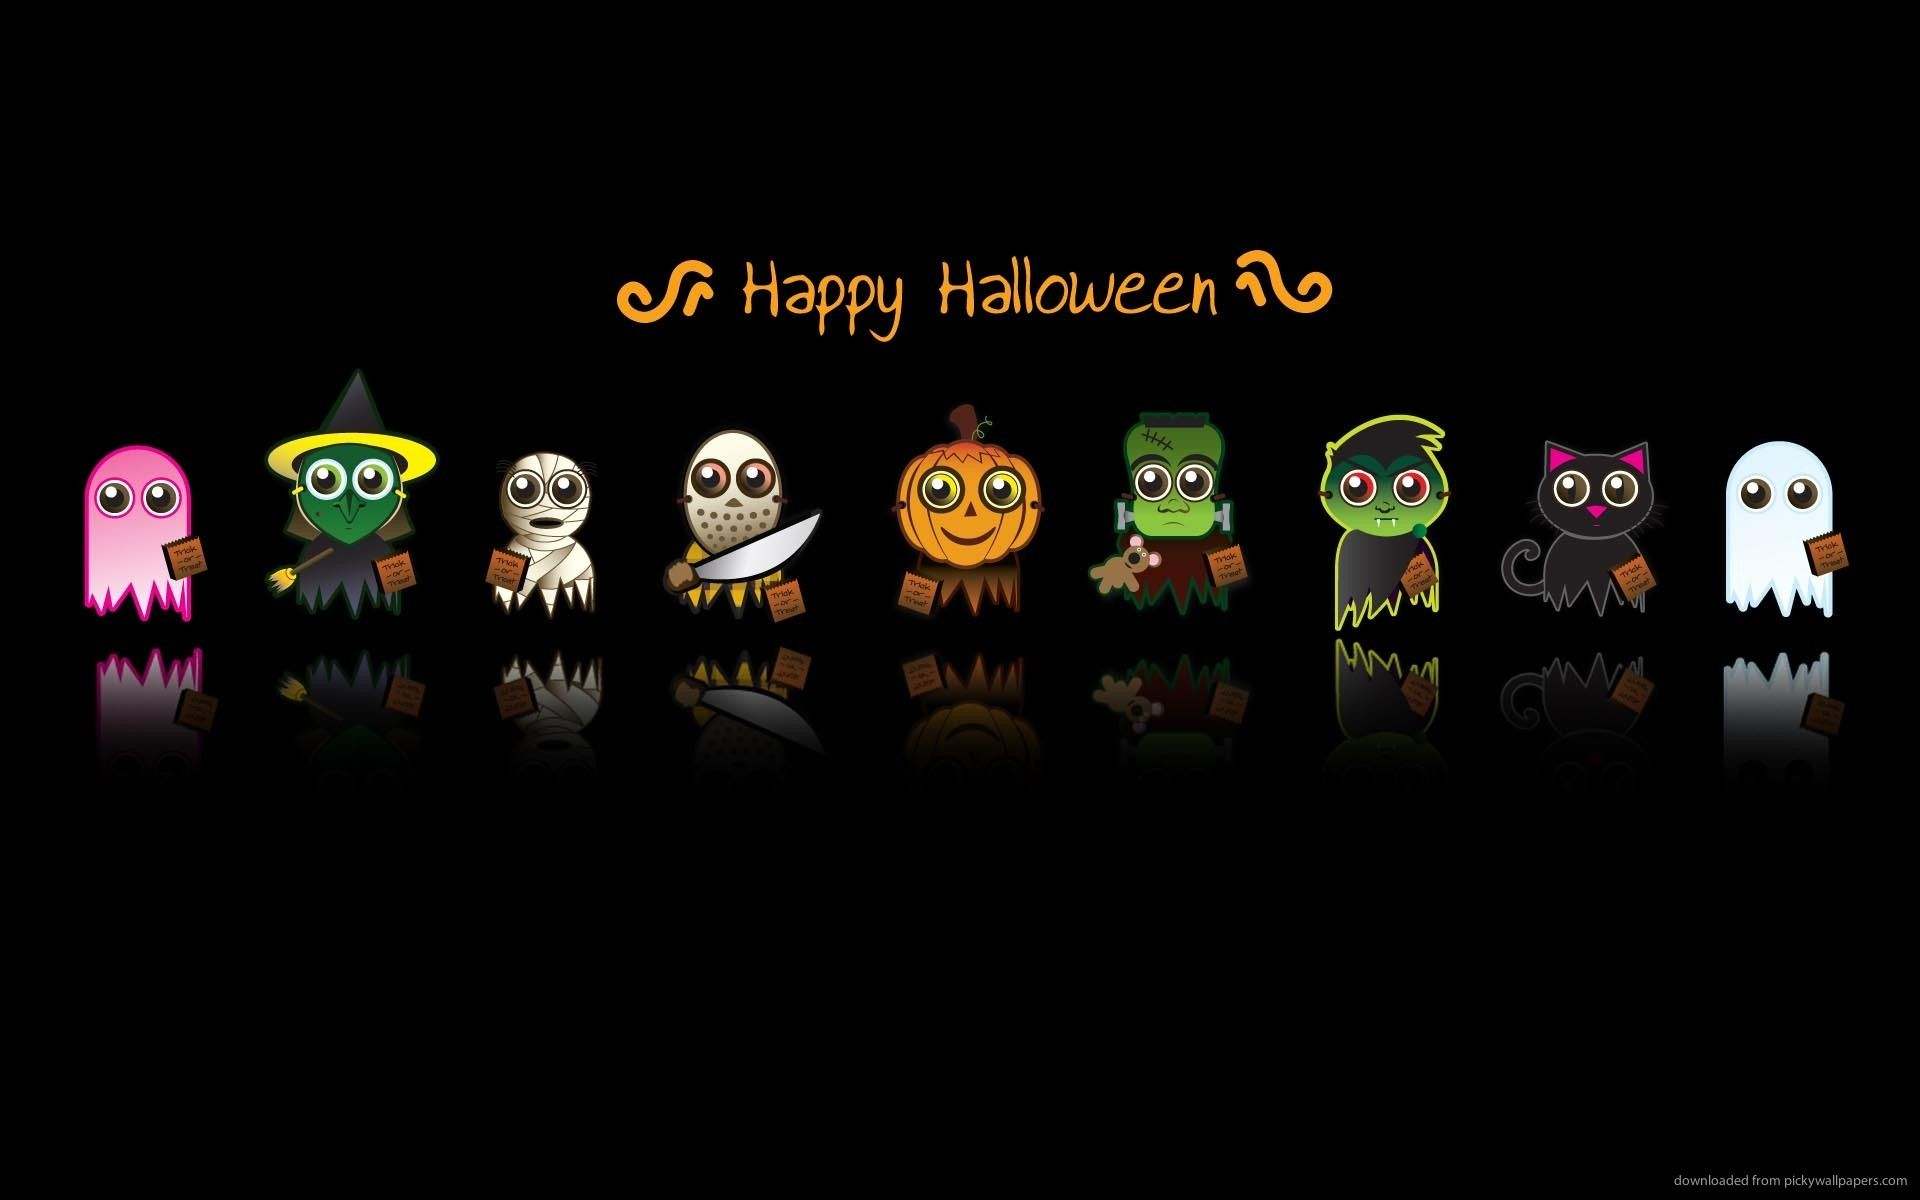 Cute Halloween Backgrounds Wallpaper Cave Halloween Desktop Wallpaper Halloween Backgrounds Hello Kitty Halloween Wallpaper